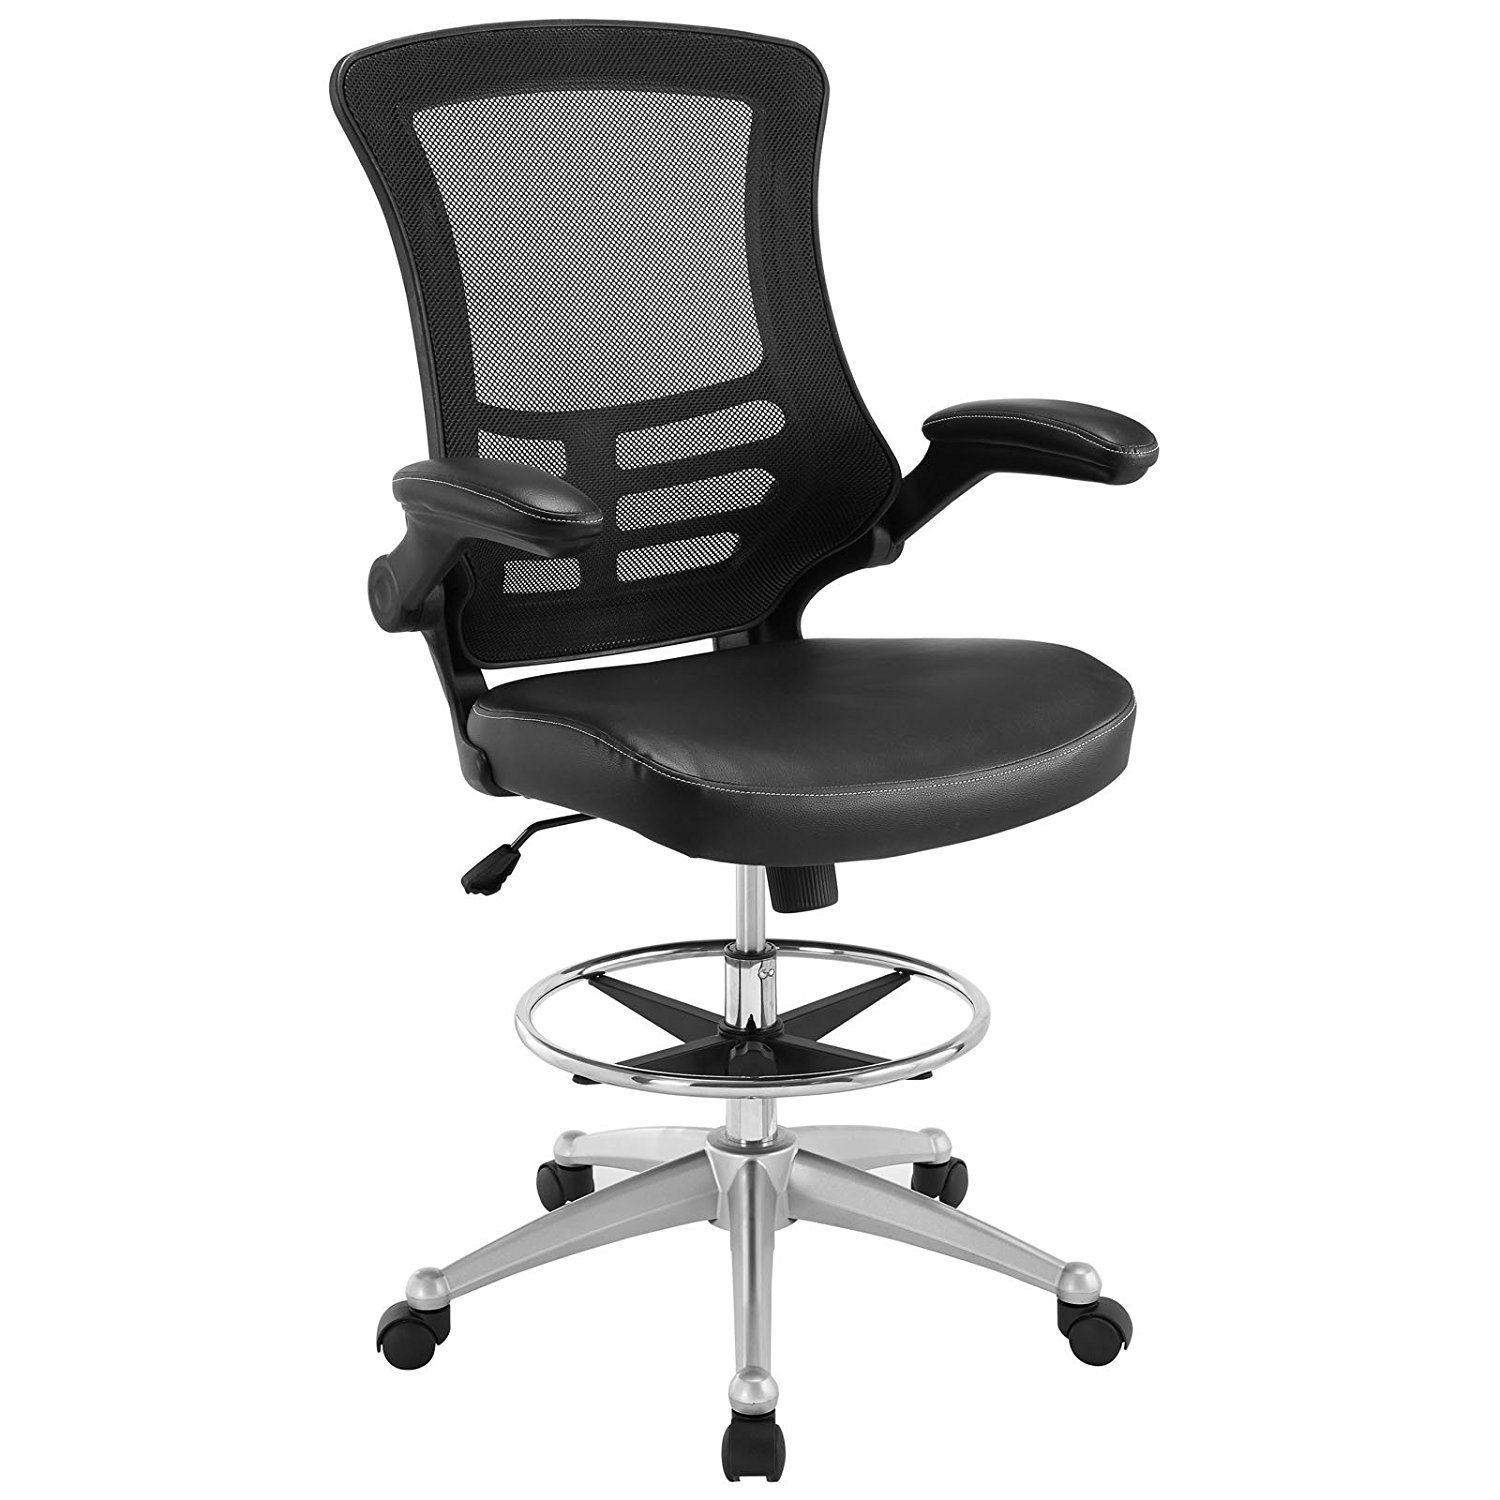 Drafting Chair With Arms  Home Furniture Design